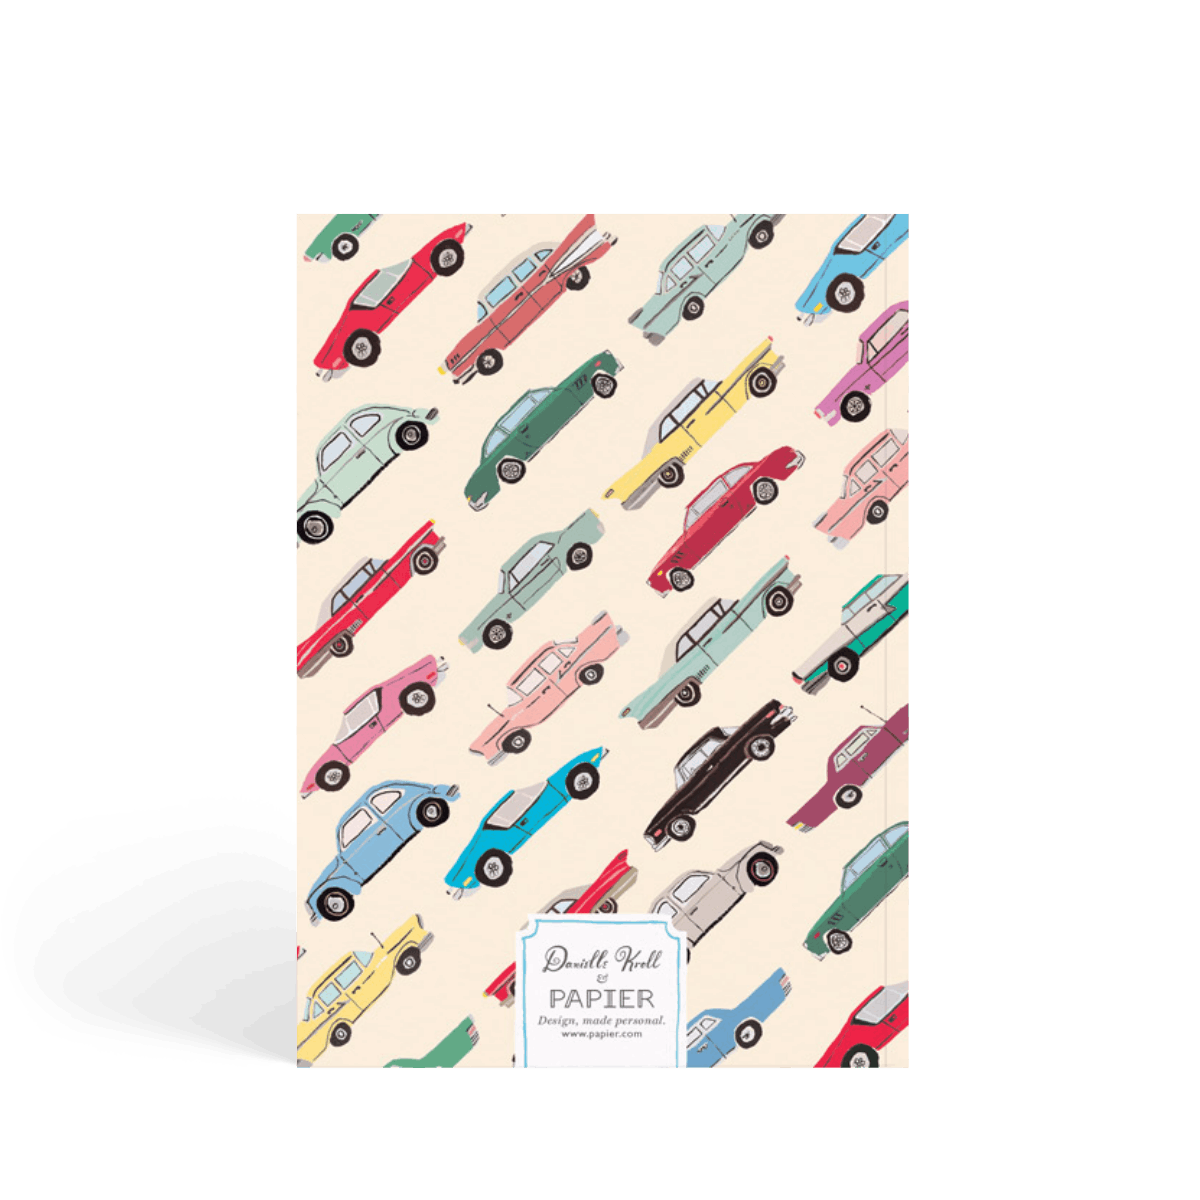 Https%3a%2f%2fwww.papier.com%2fproduct image%2f28295%2f5%2fvintage cars 7101 back 1505900548.png?ixlib=rb 1.1